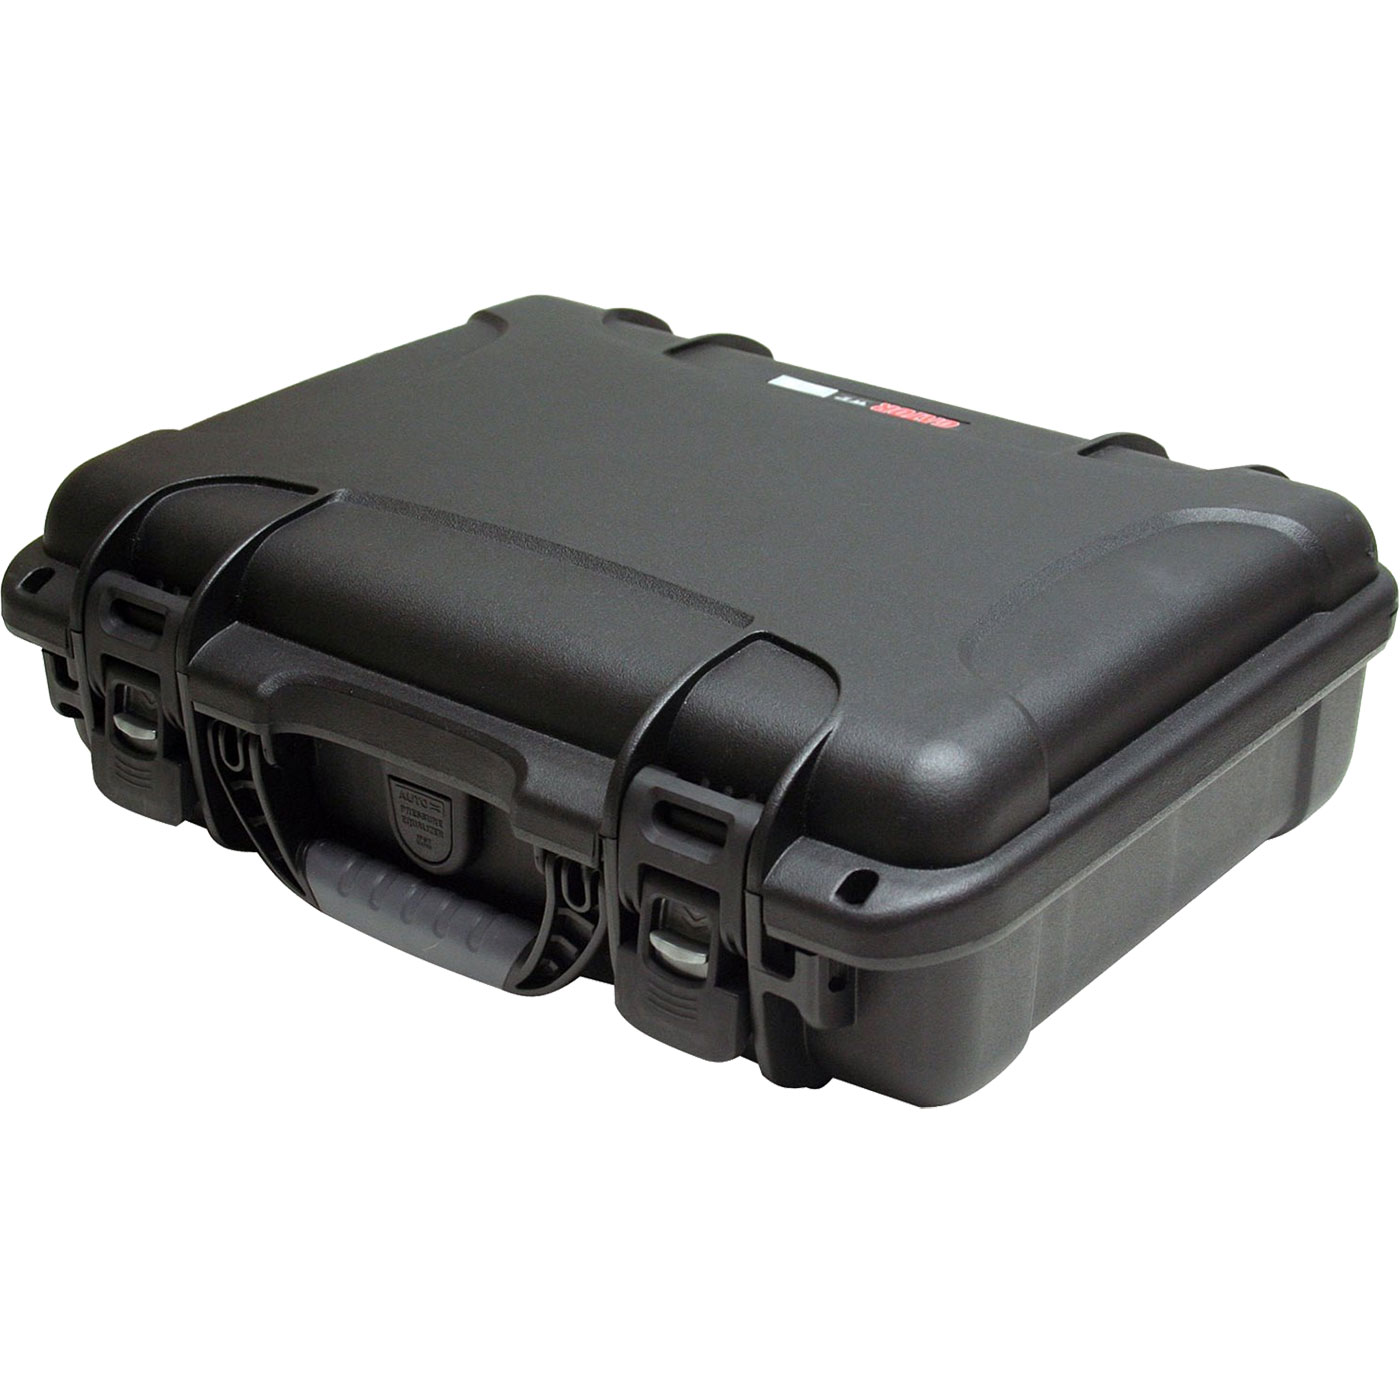 """Gator Cases 13.2"""" x 9.2"""" x 3.8"""" Waterproof Injection Molded Case with Diced Foam"""